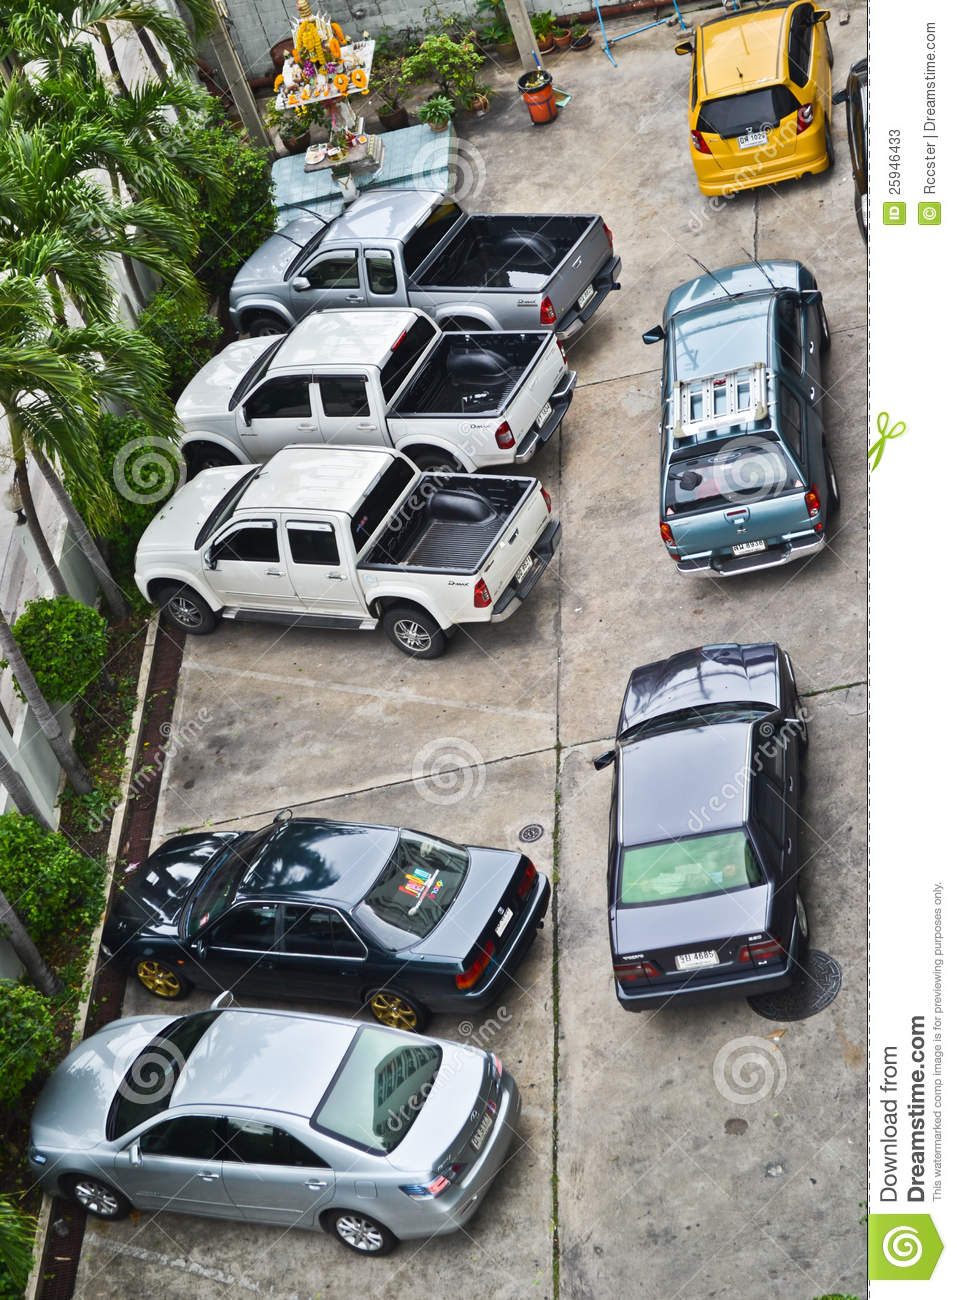 bad parking editorial stock photo image of block chaos 25946433. Black Bedroom Furniture Sets. Home Design Ideas